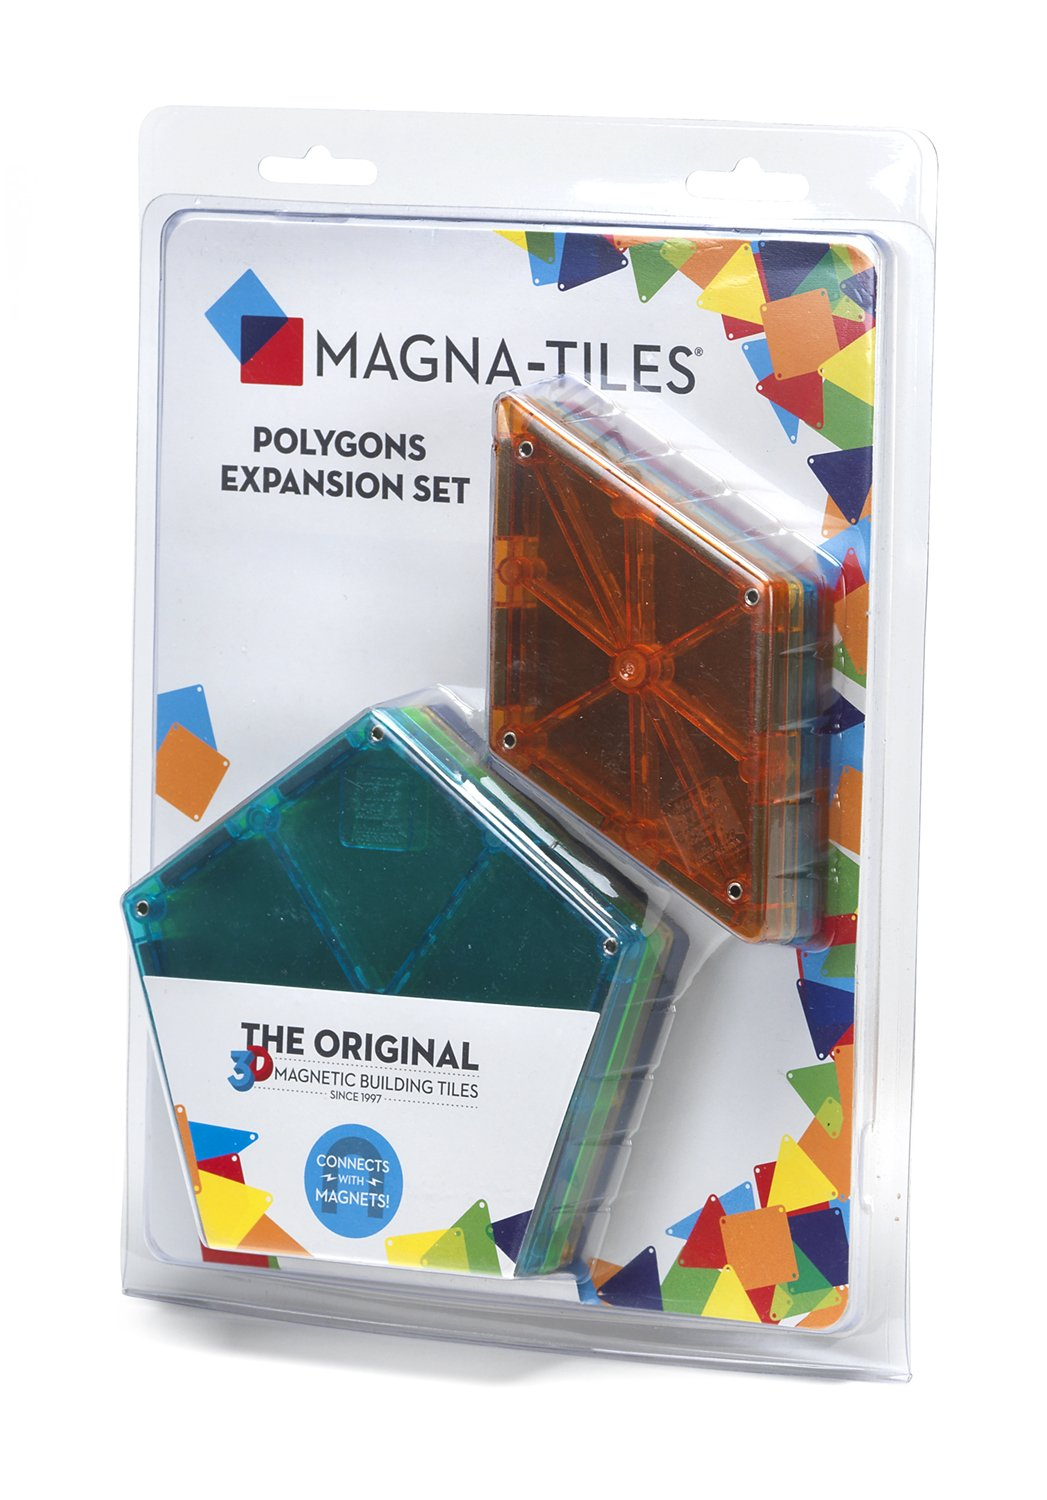 Magna-Tiles 15718 Polygons 8 Piece Expansion Set Review